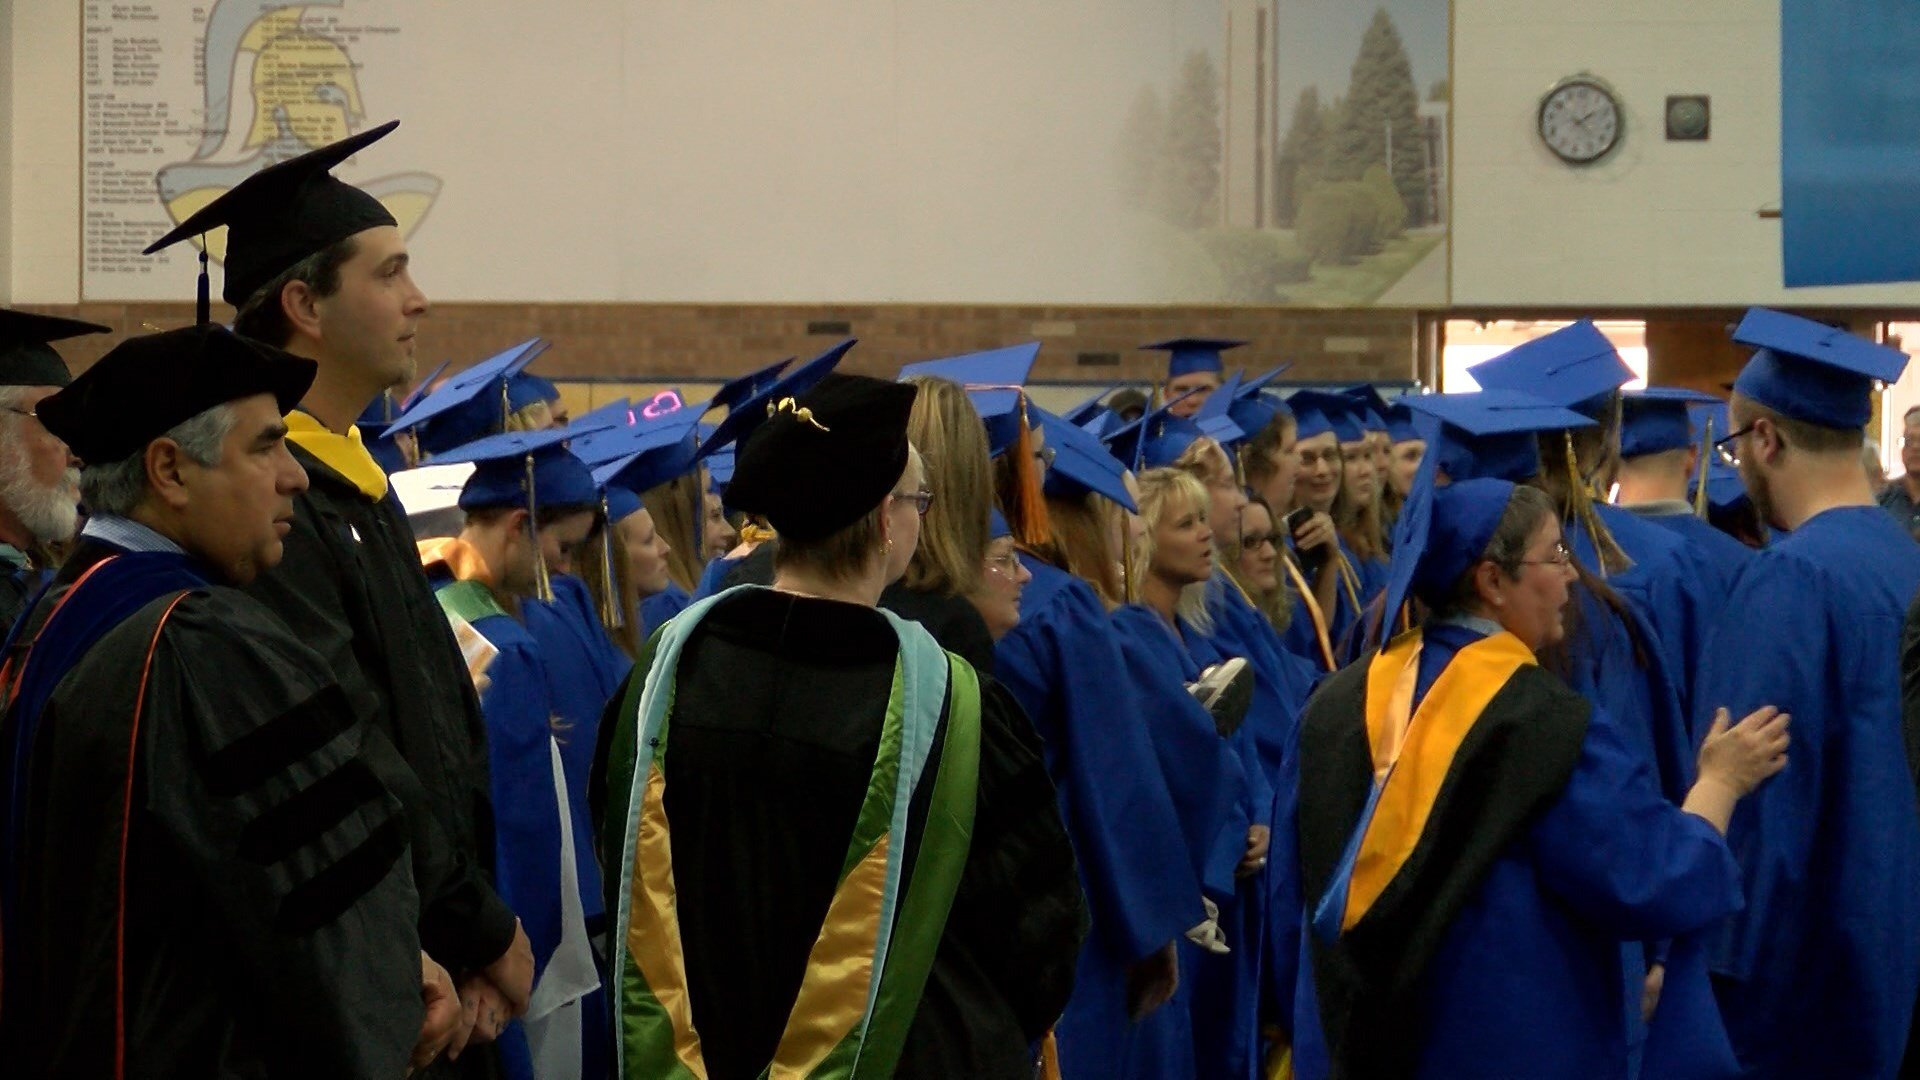 students graduate from university of great falls great falls co 2016 great falls college msu commencement ceremony at mclaughlin center located at the university of